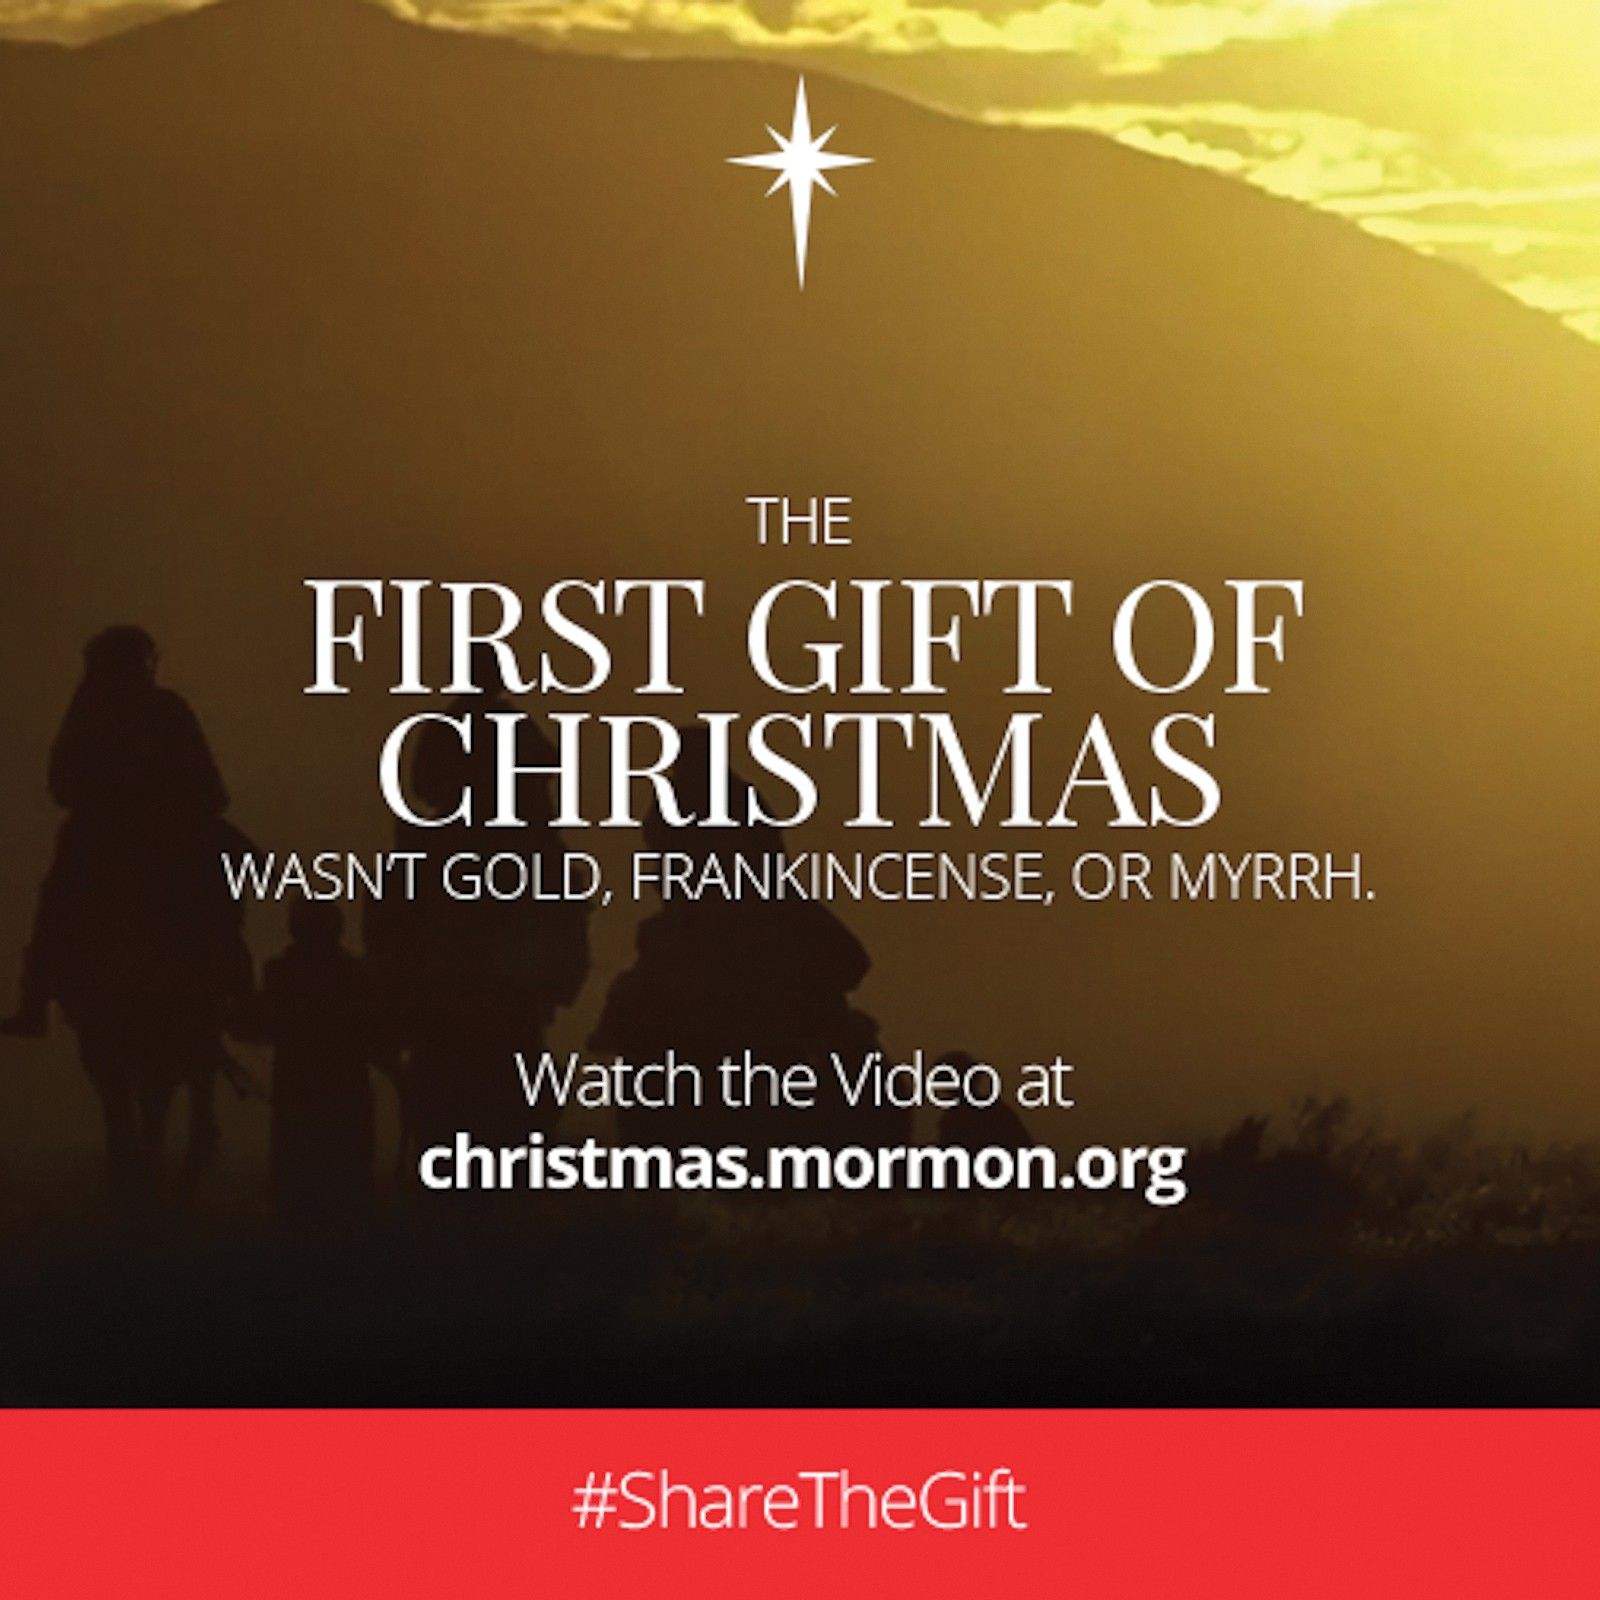 The first gift of Christmas wasn't gold, frankincense, or myrrh. Watch the video at christmas.mormon.org. #ShareTheGift